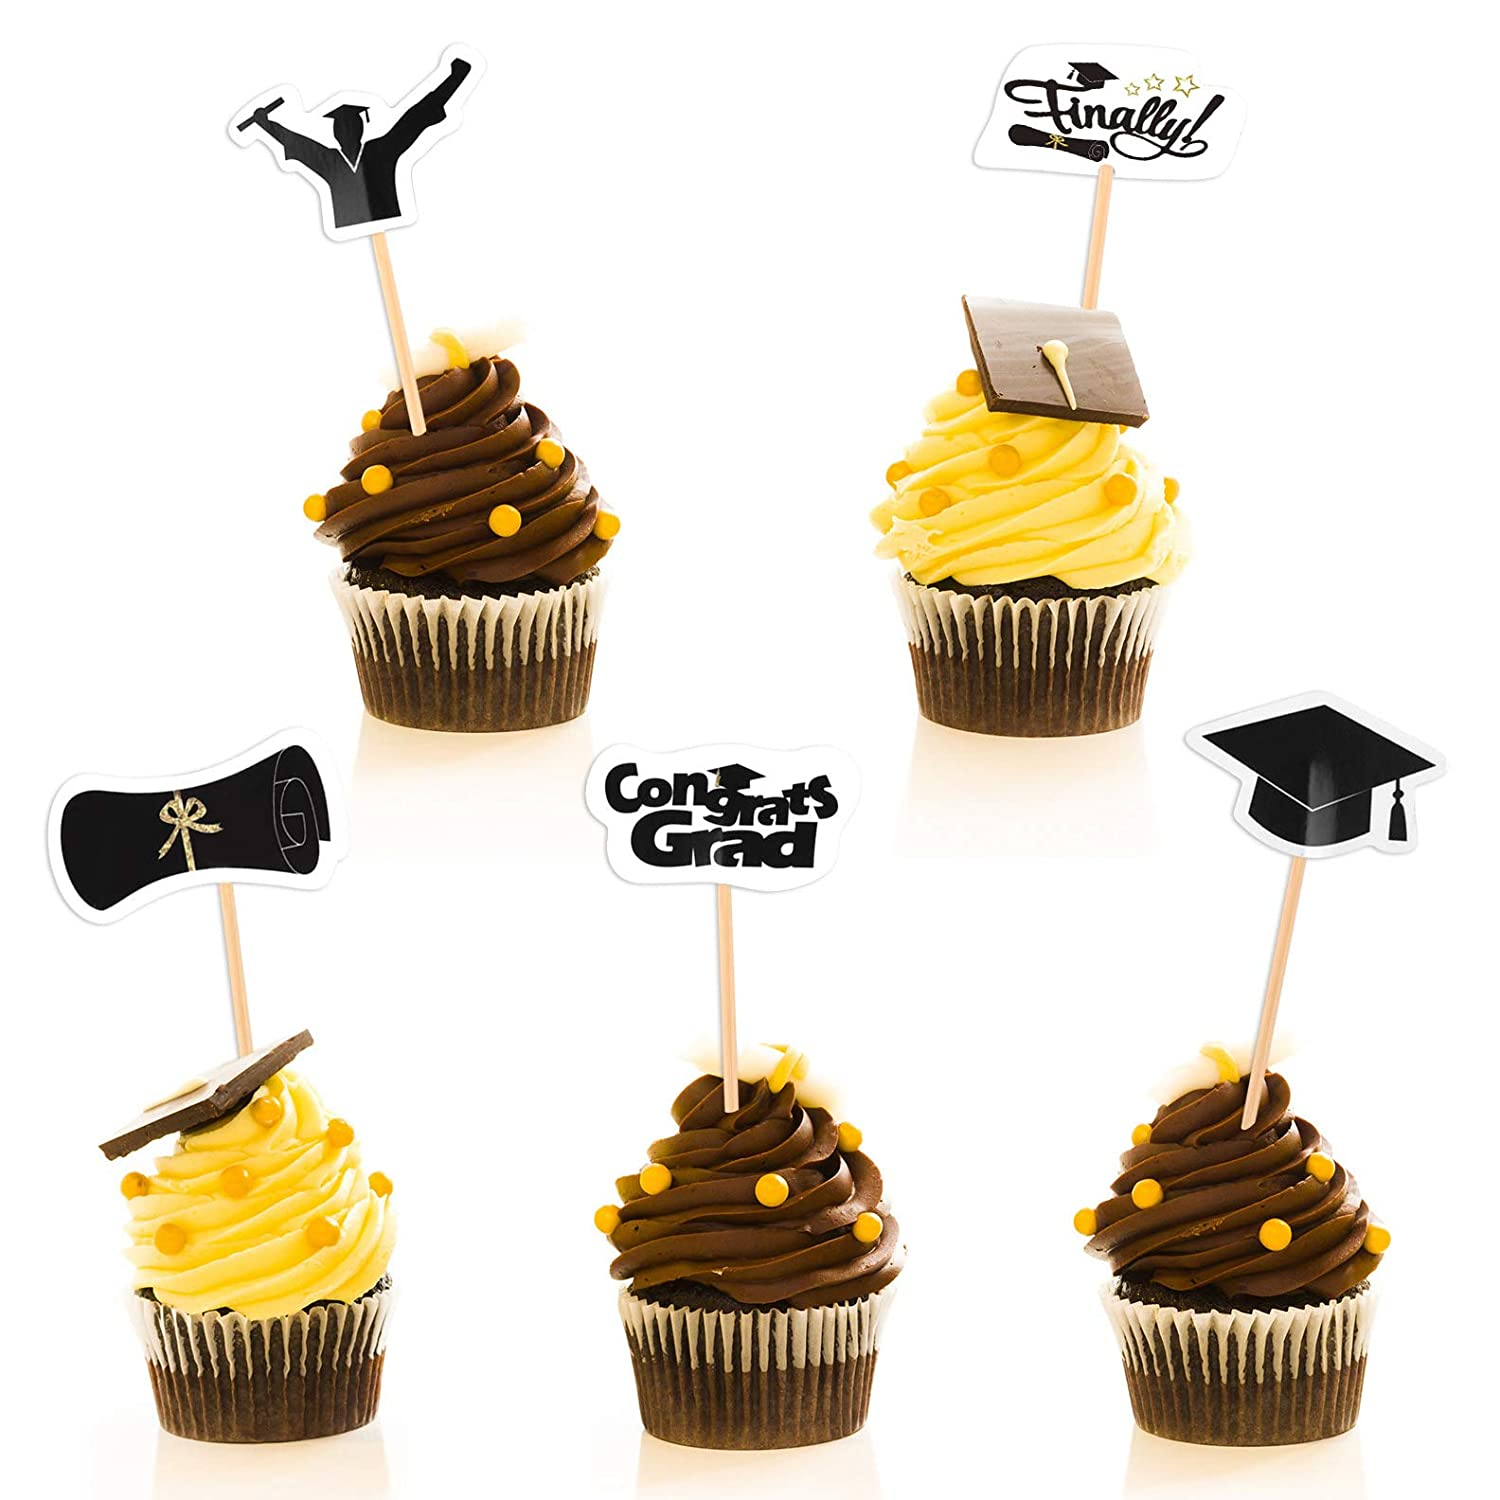 FEPITO 50 Pieces Graduation Cupcake Toppers Cake Decorations Congrats Grad Party Supplies Decorations